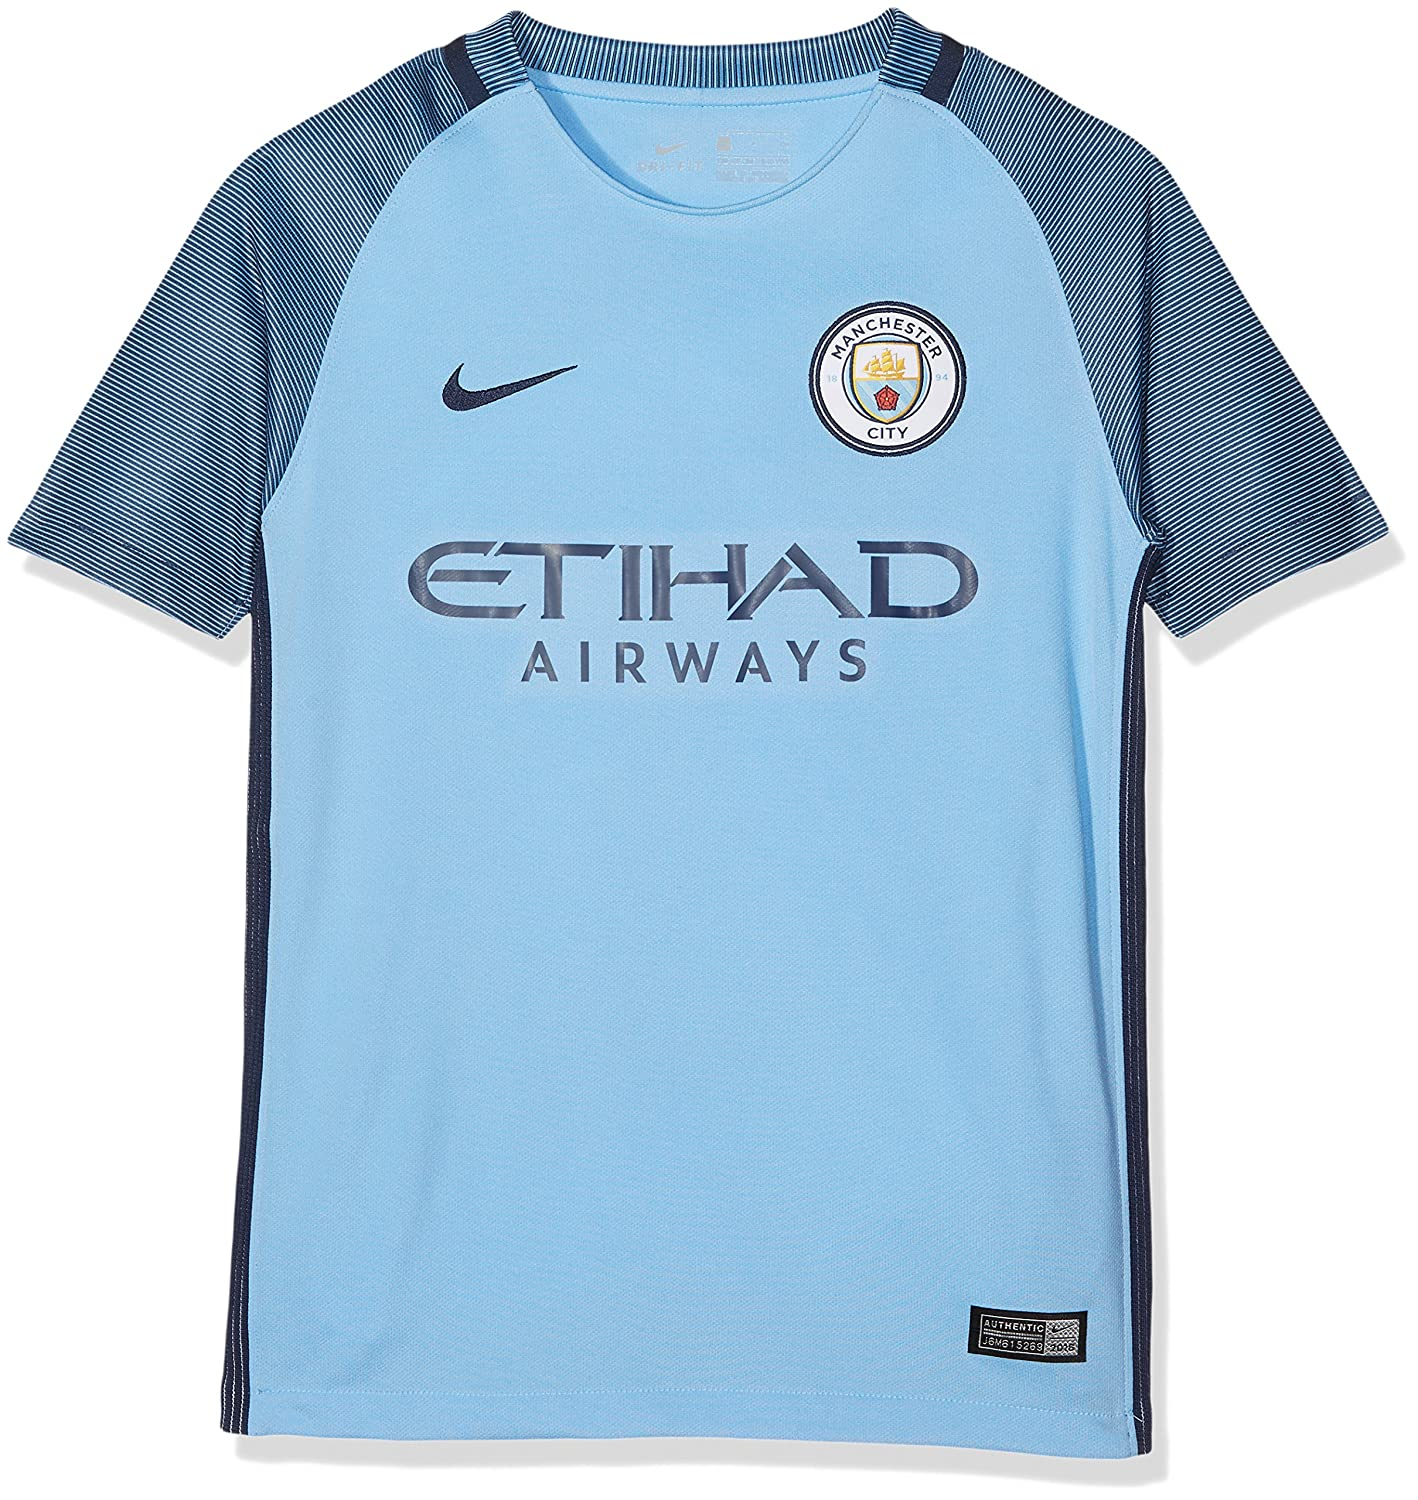 Nike Manchester City Yth Ss Hm Stadium Jsy, Camiseta de manga corta para niños, Azul (Field Blue / Midnight Navy / Midnight Navy), XS: Amazon.es: Deportes y ...